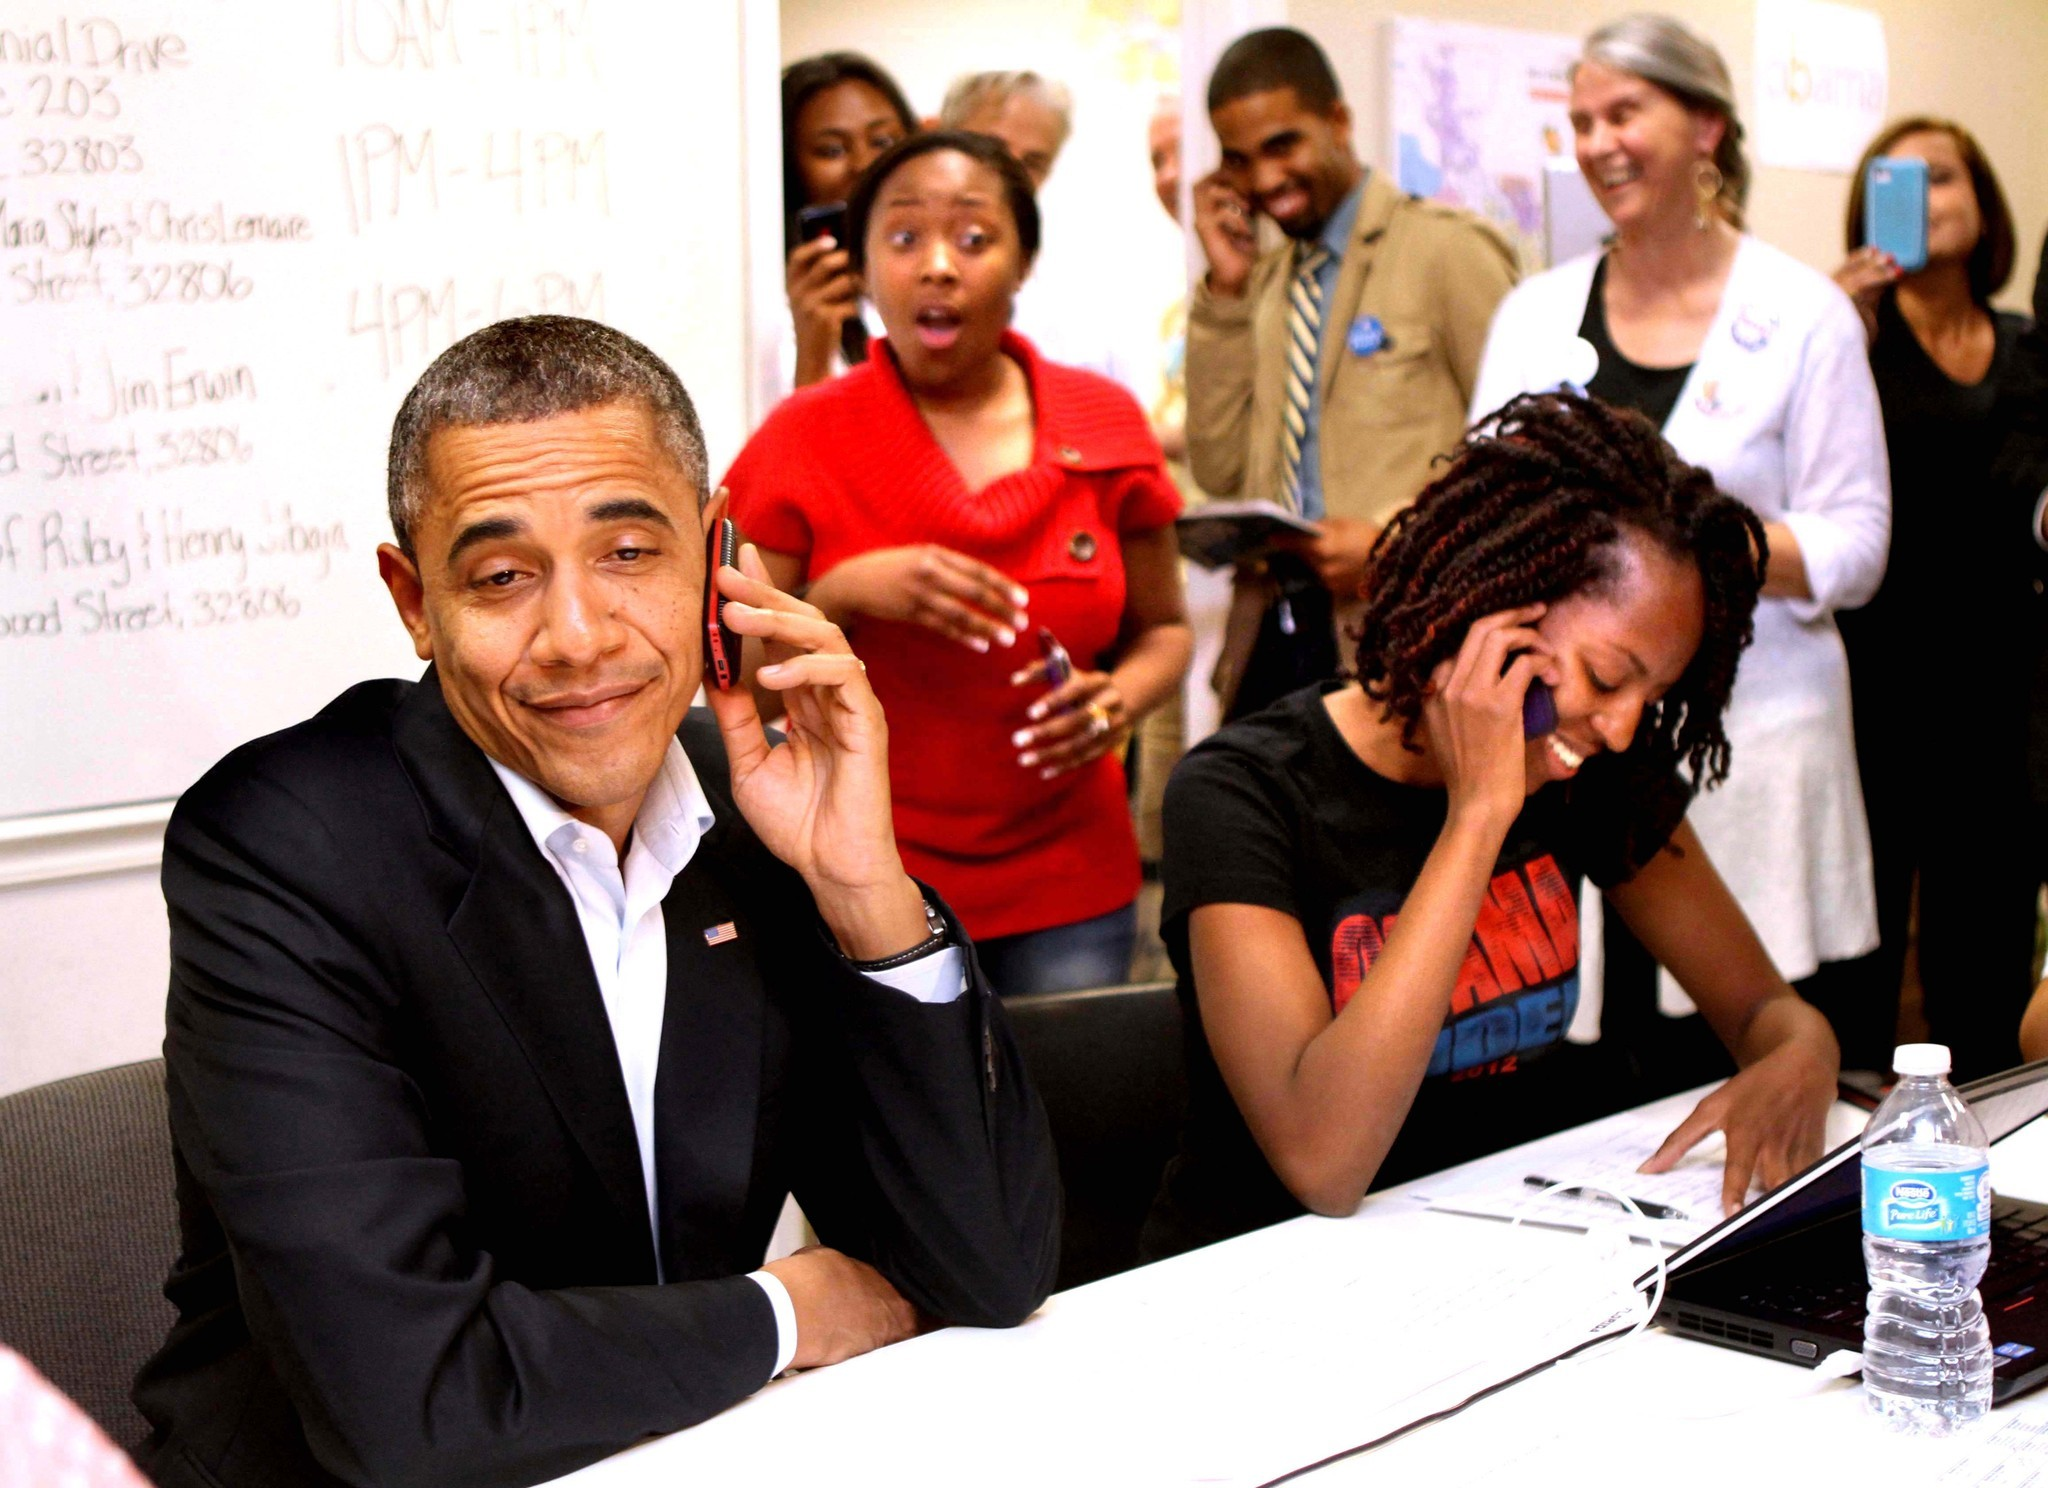 President Obama takes it in stride as he accidentally connected to a wrong number while visiting the Orlando campaign office, October 28.